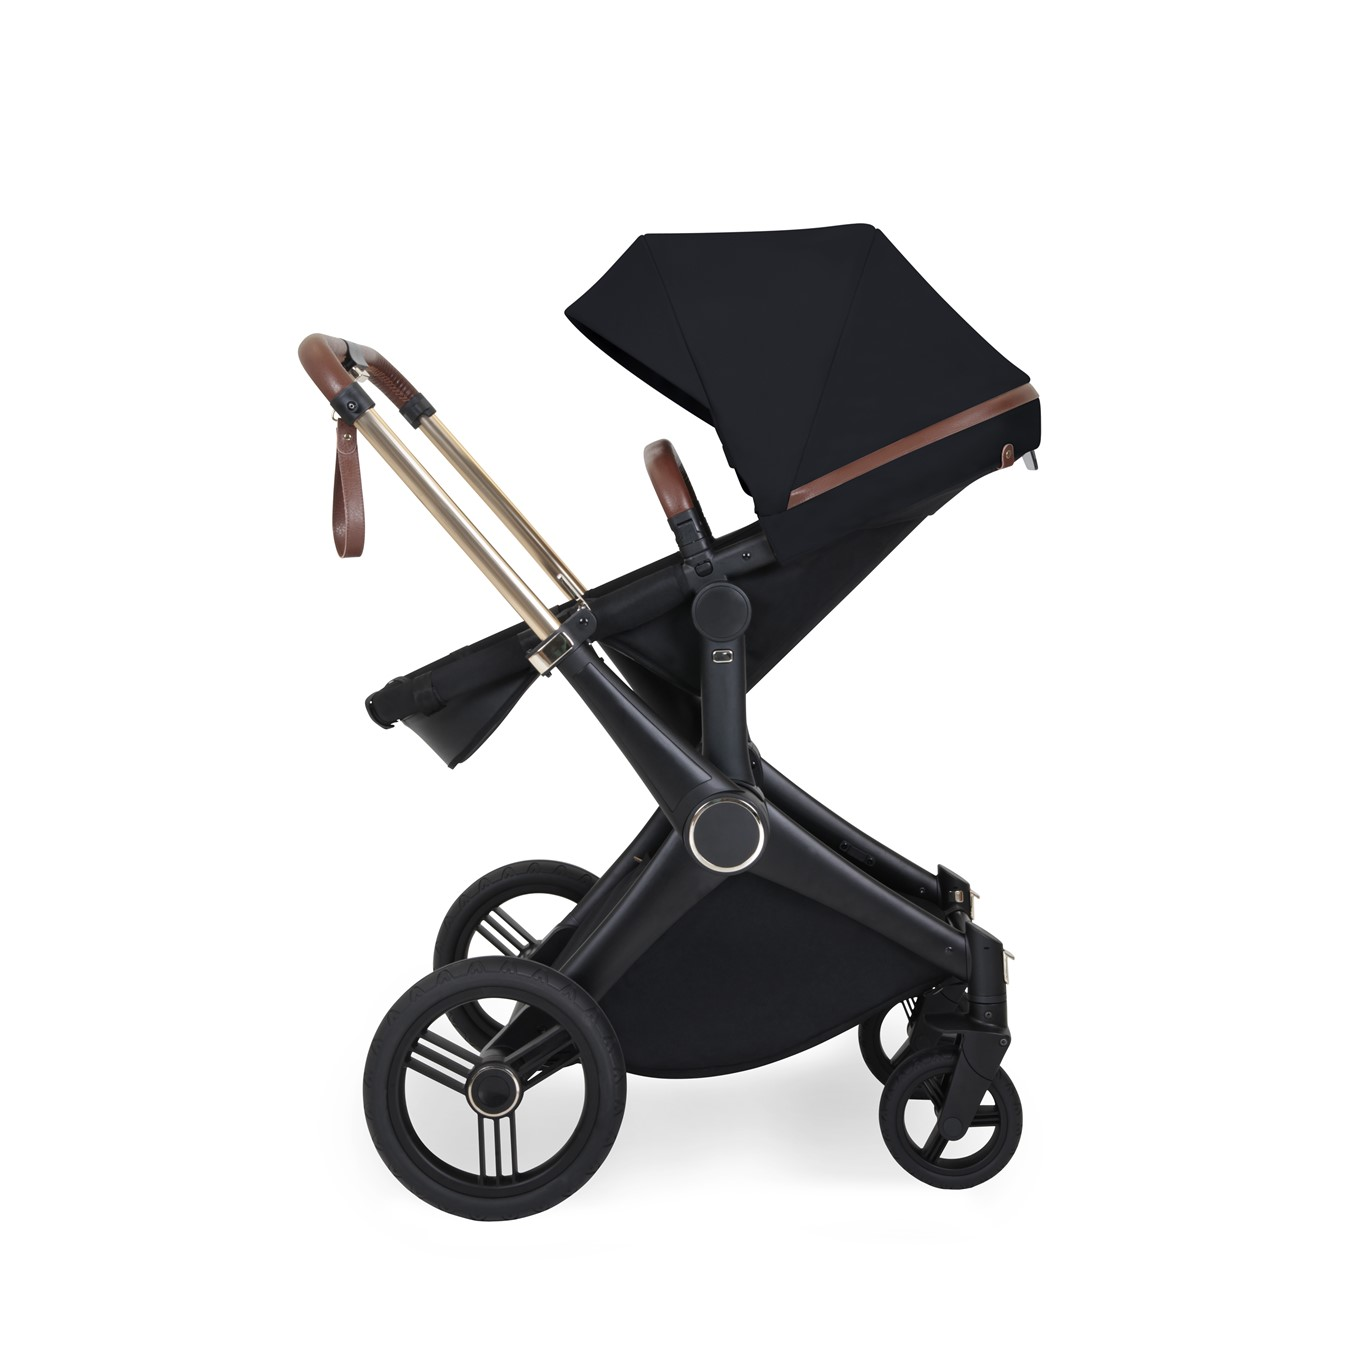 Baby Buy of the Week: Ickle Bubba Aston Rose Travel System